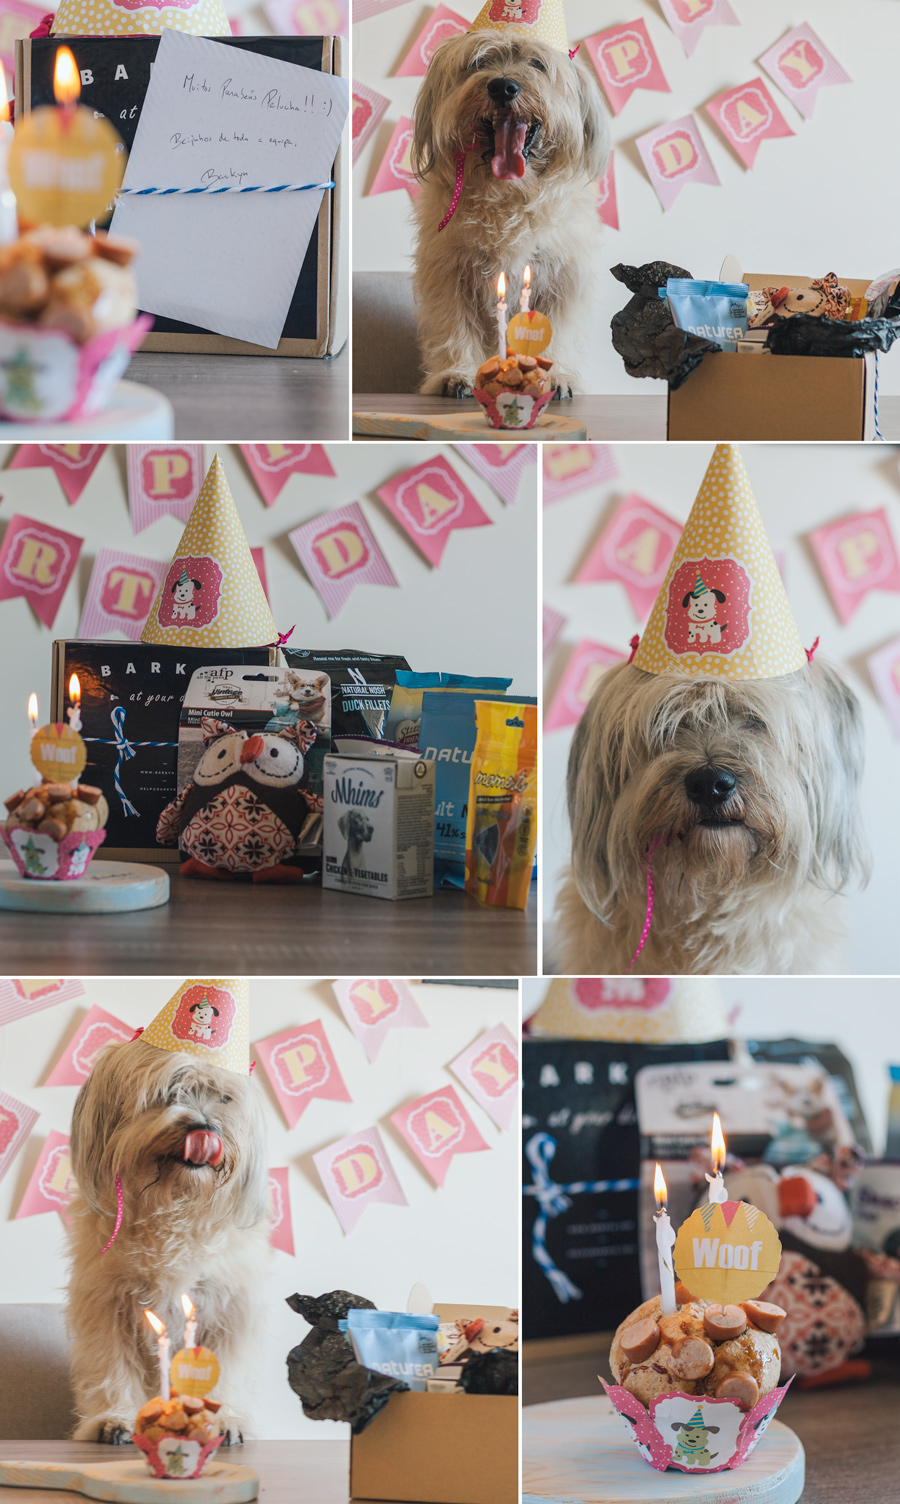 Dog, Birthday, Barkyn